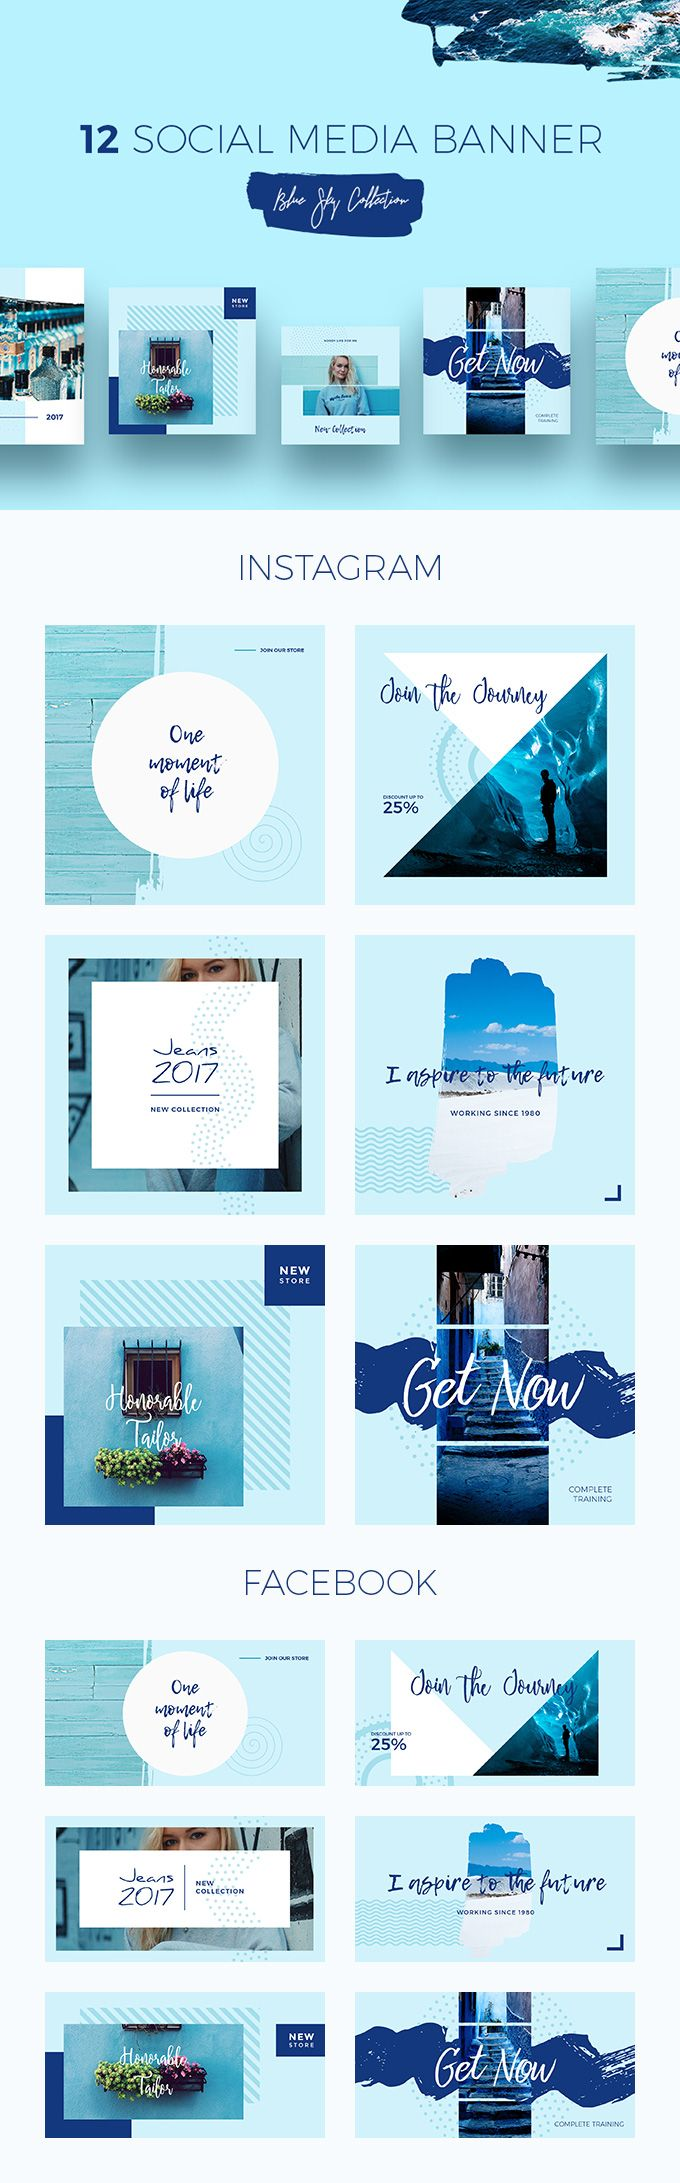 12 Blue Sky Social Media Templates - Refresh your Facebook, Instagram or Pinterest page with a set of eye-catching templates in blue colors and attract more passionate users to your source. Lifestyle, fashion, product advertising, online stores will get a totally new look thanks to an aqueous color scale, revealing your sweetest memories about the summer and vacation by the ocean.